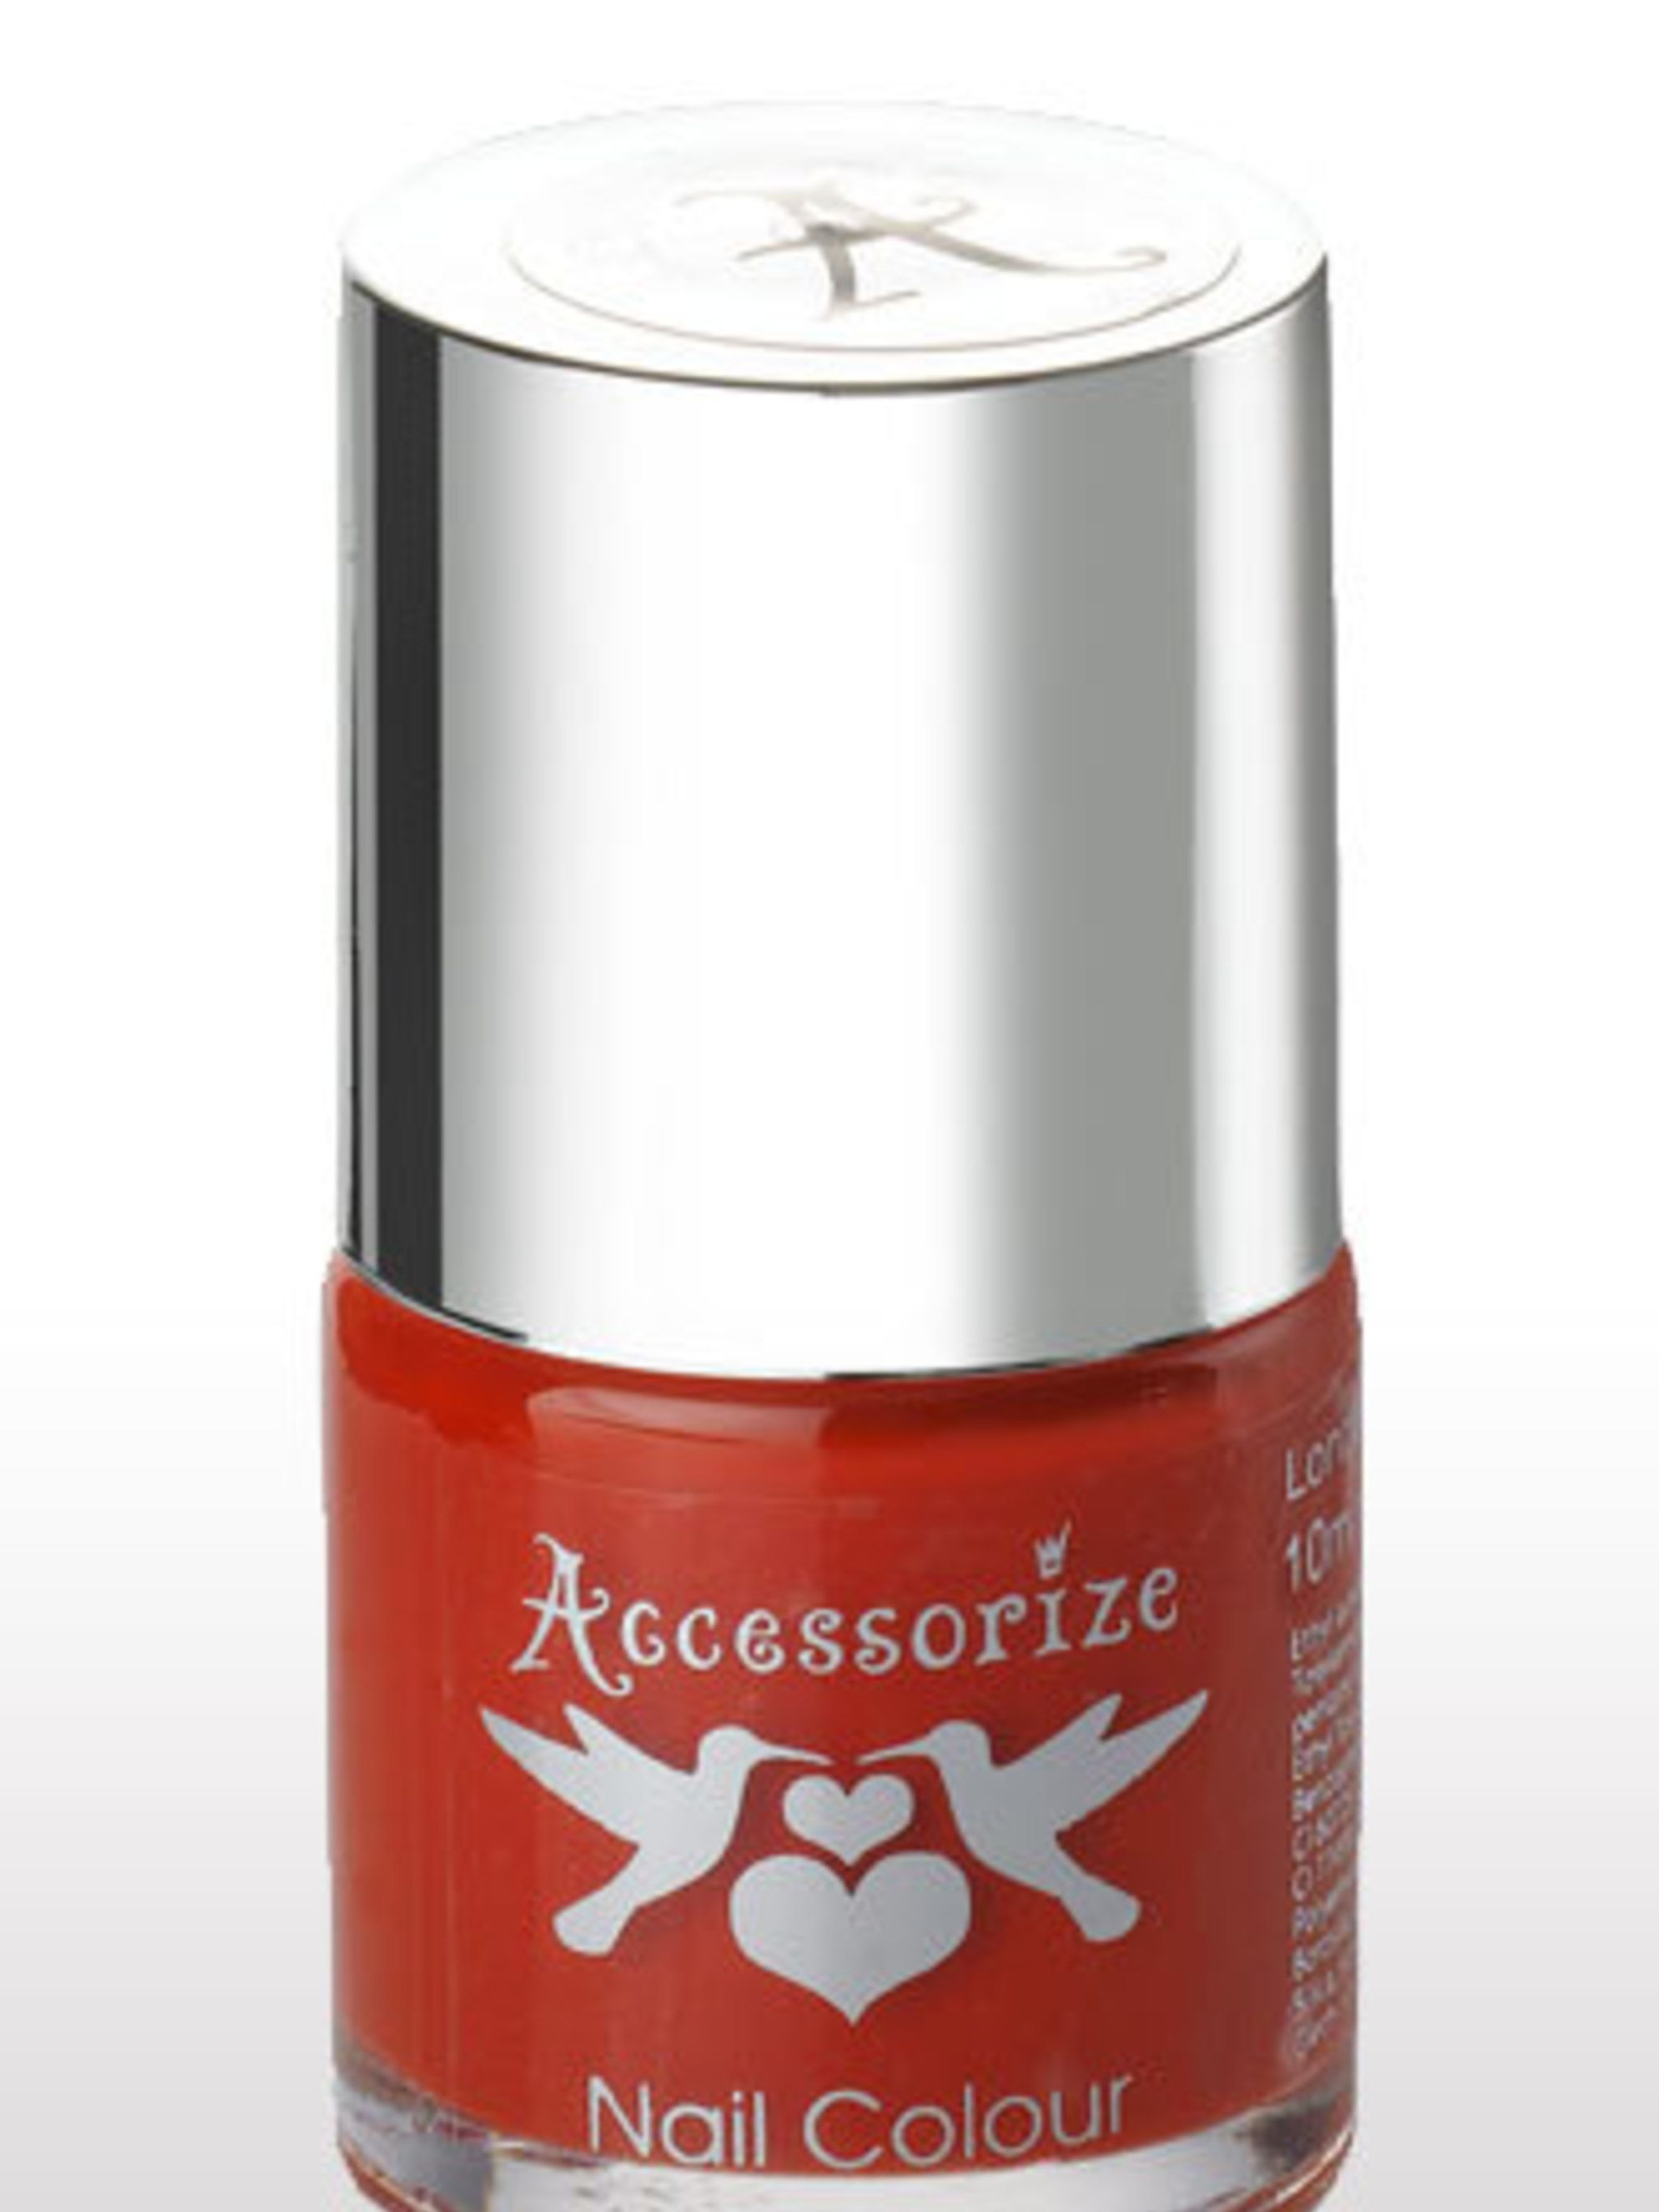 "<p>Nail polish in London Town, £4 by <a href=""http://www.monsoon.co.uk/Nail-Polish/London-Town-Nail-Polish/invt/60005589"">Accessorize</a></p>"